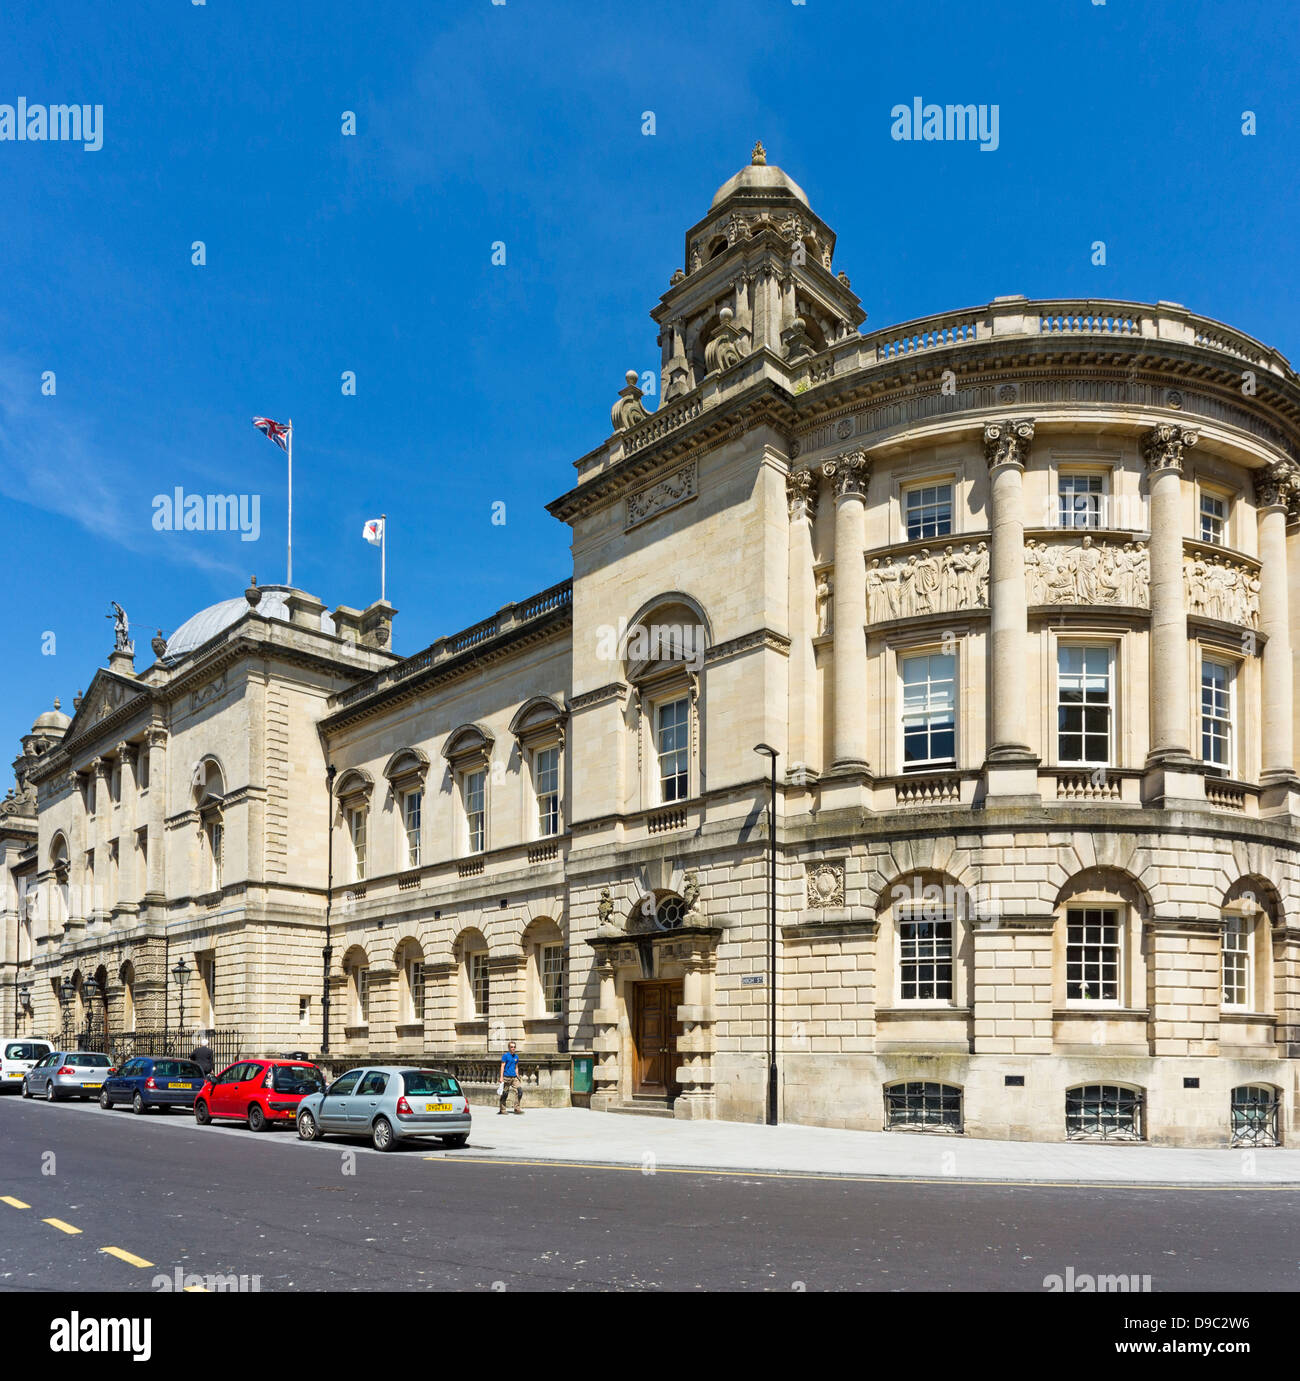 The Guildhall in Bath, Somerset, England, UK - Stock Image